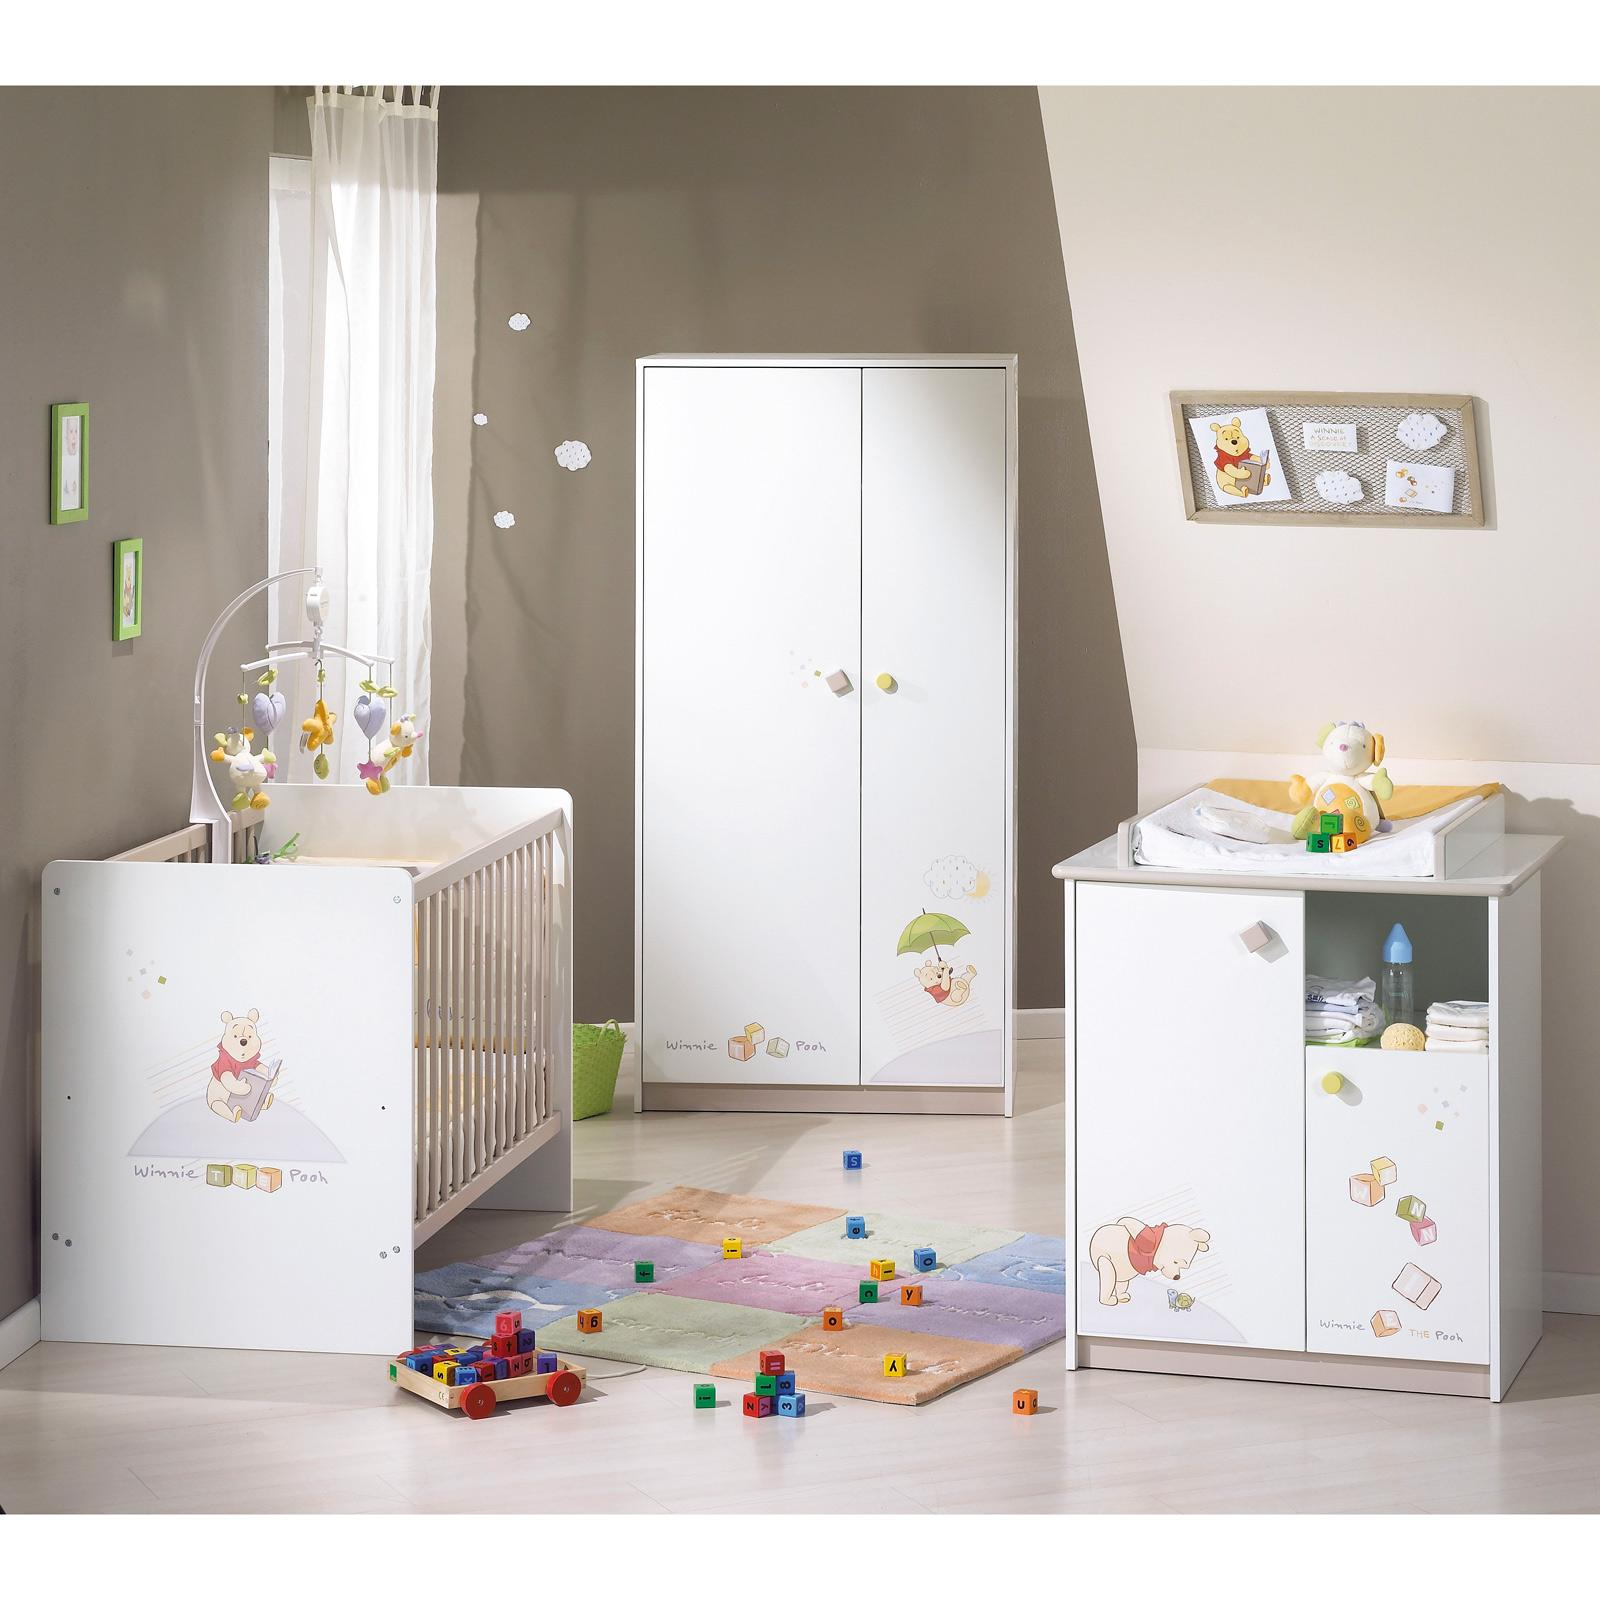 Decoration chambre bebe winnie pooh for Decoration porte chambre bebe